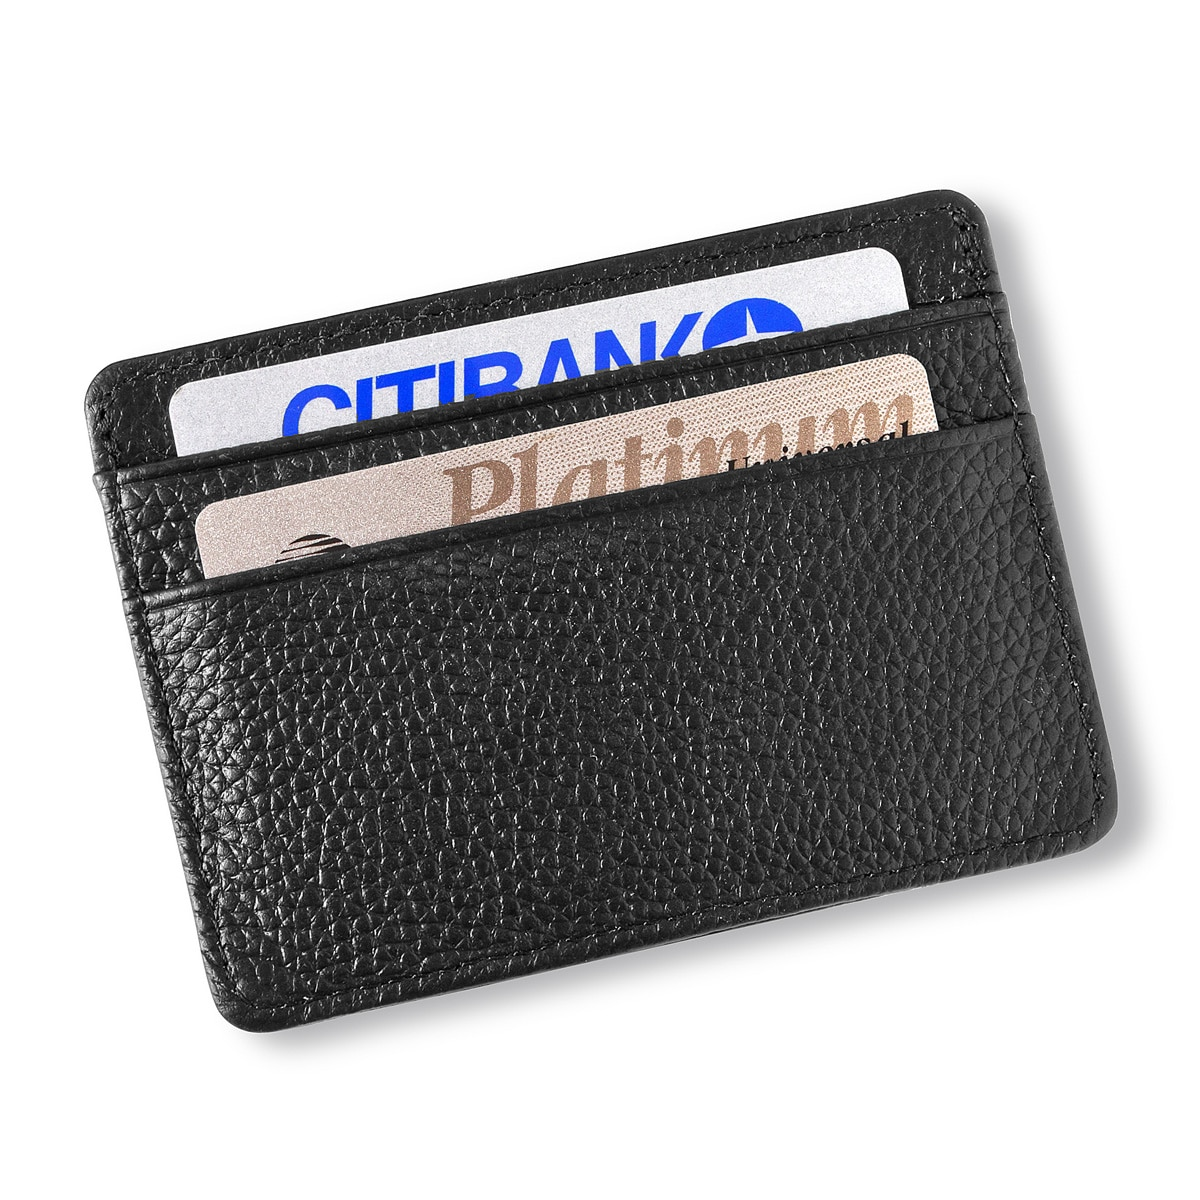 Easily keep track of your credit cards, ids and cash.